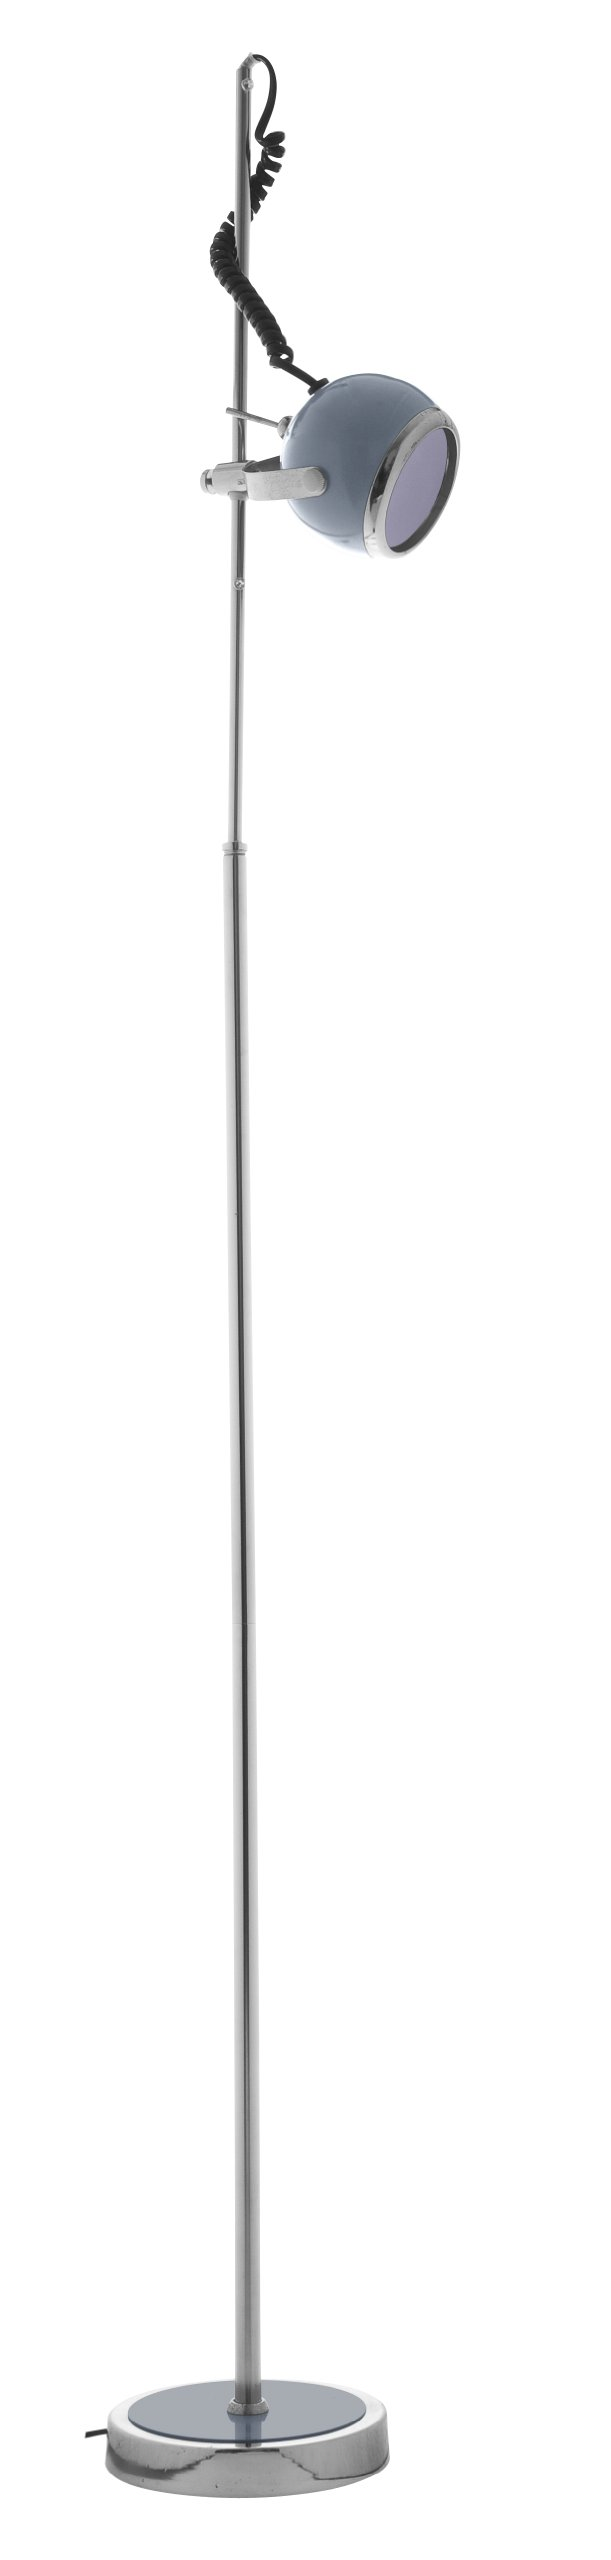 Lifetime Lighting Single Floor Lamp (Grey)